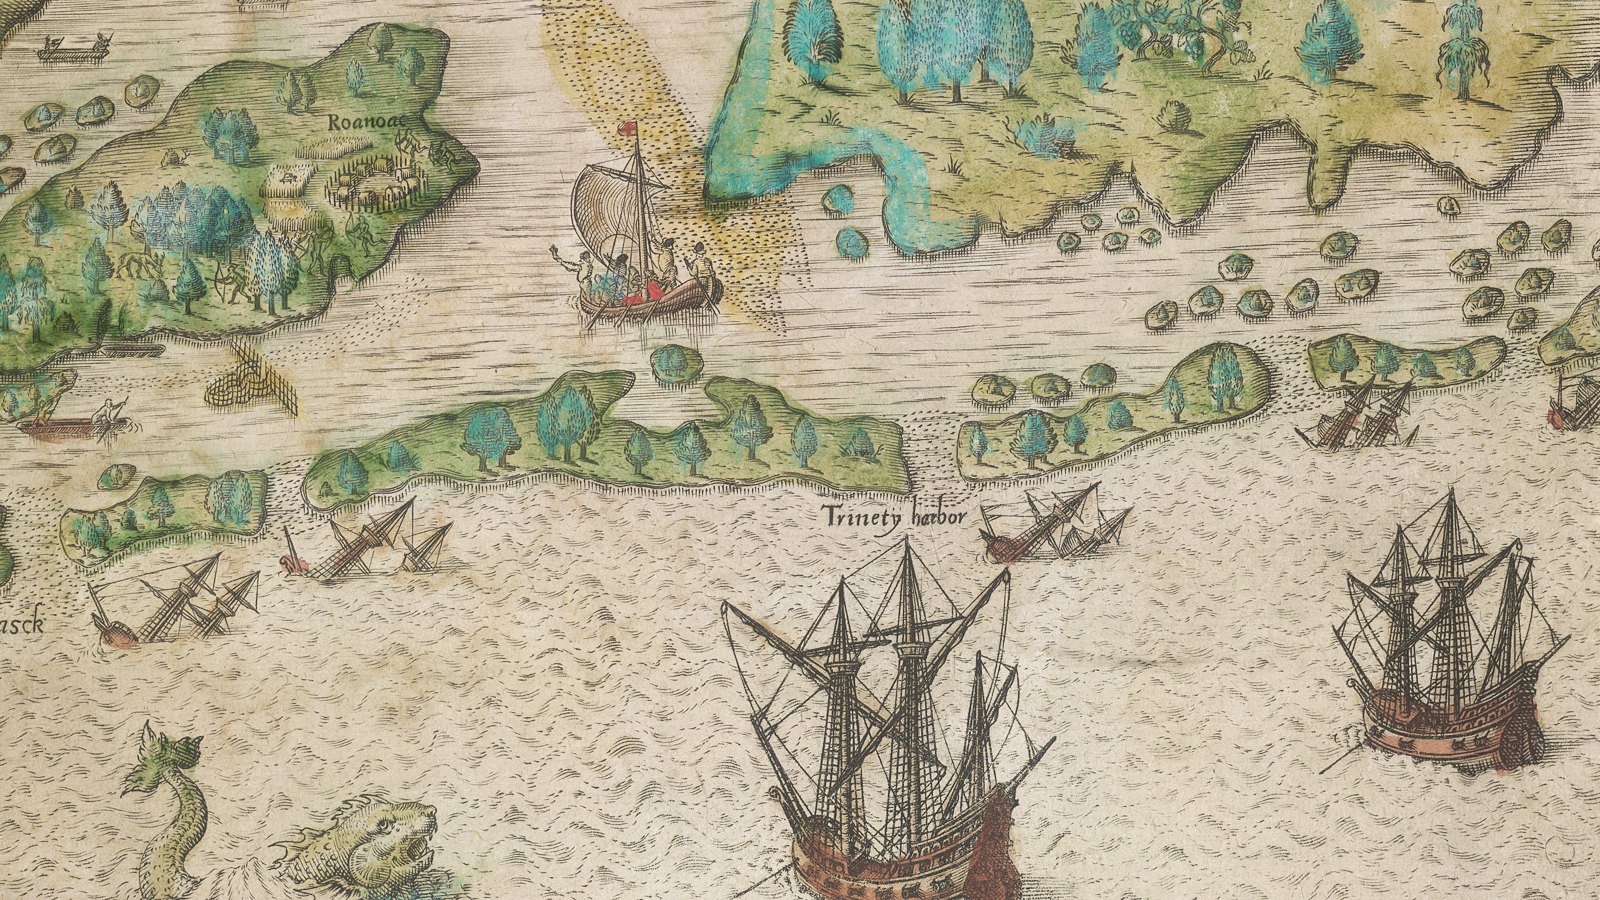 Exploration and trade in Elizabethan England